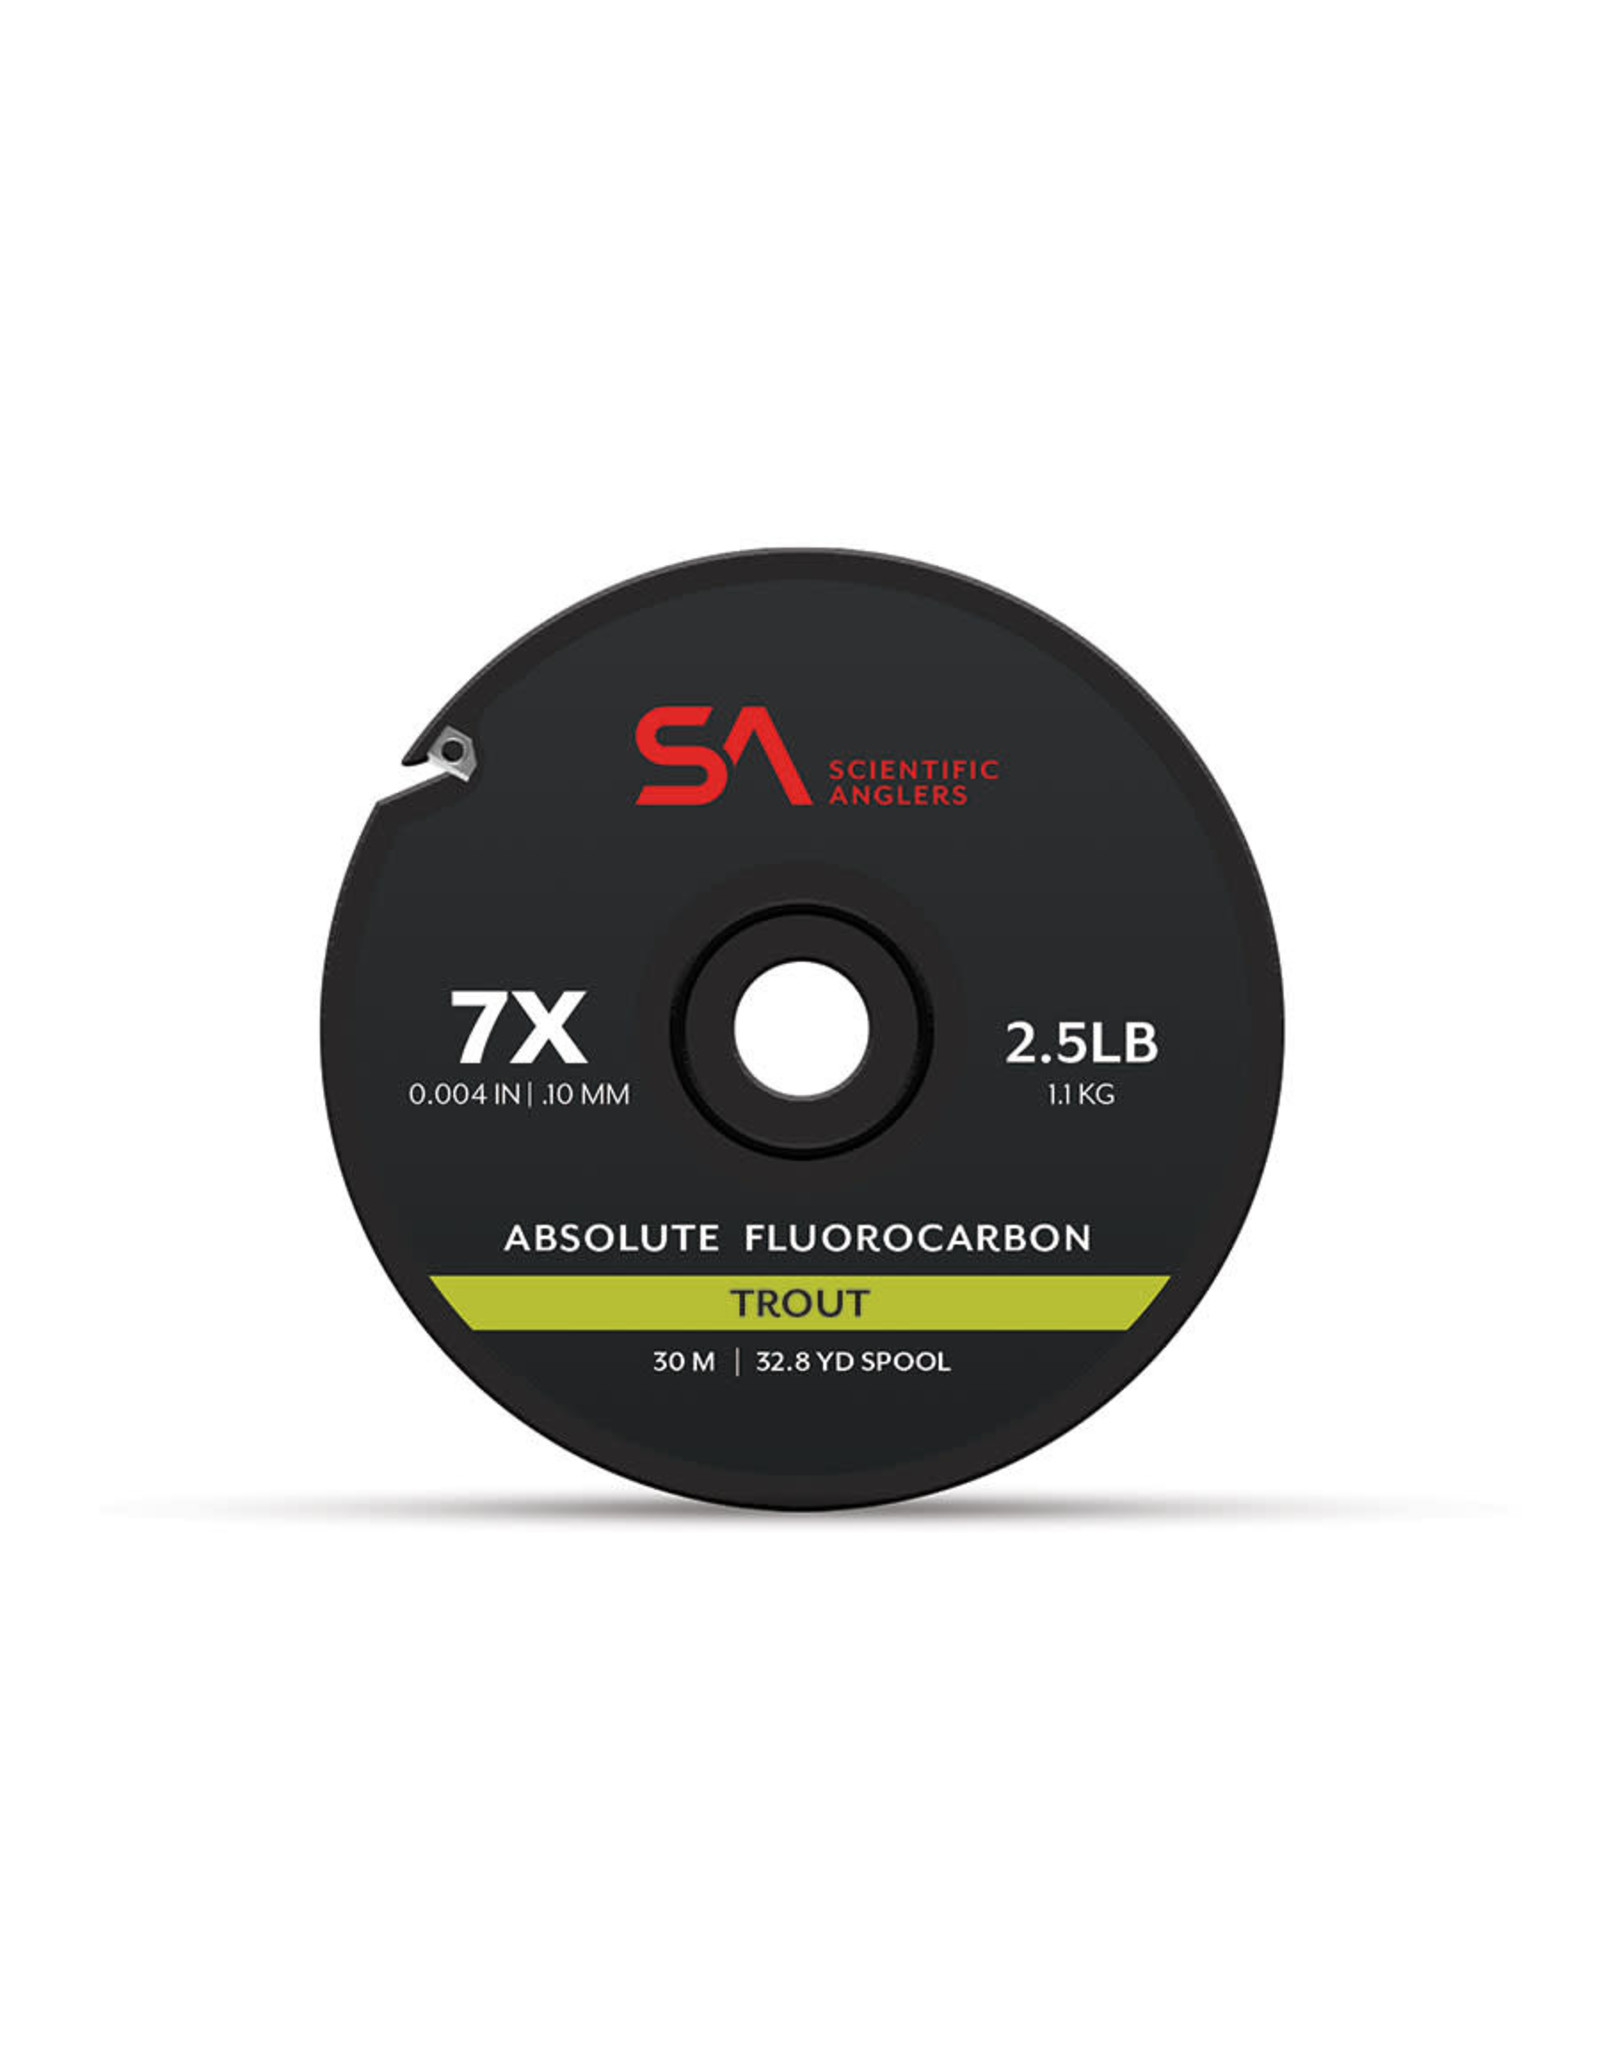 SCIENTIFIC ANGLERS Absolute Fluorocarbon Trout Tippet 30M